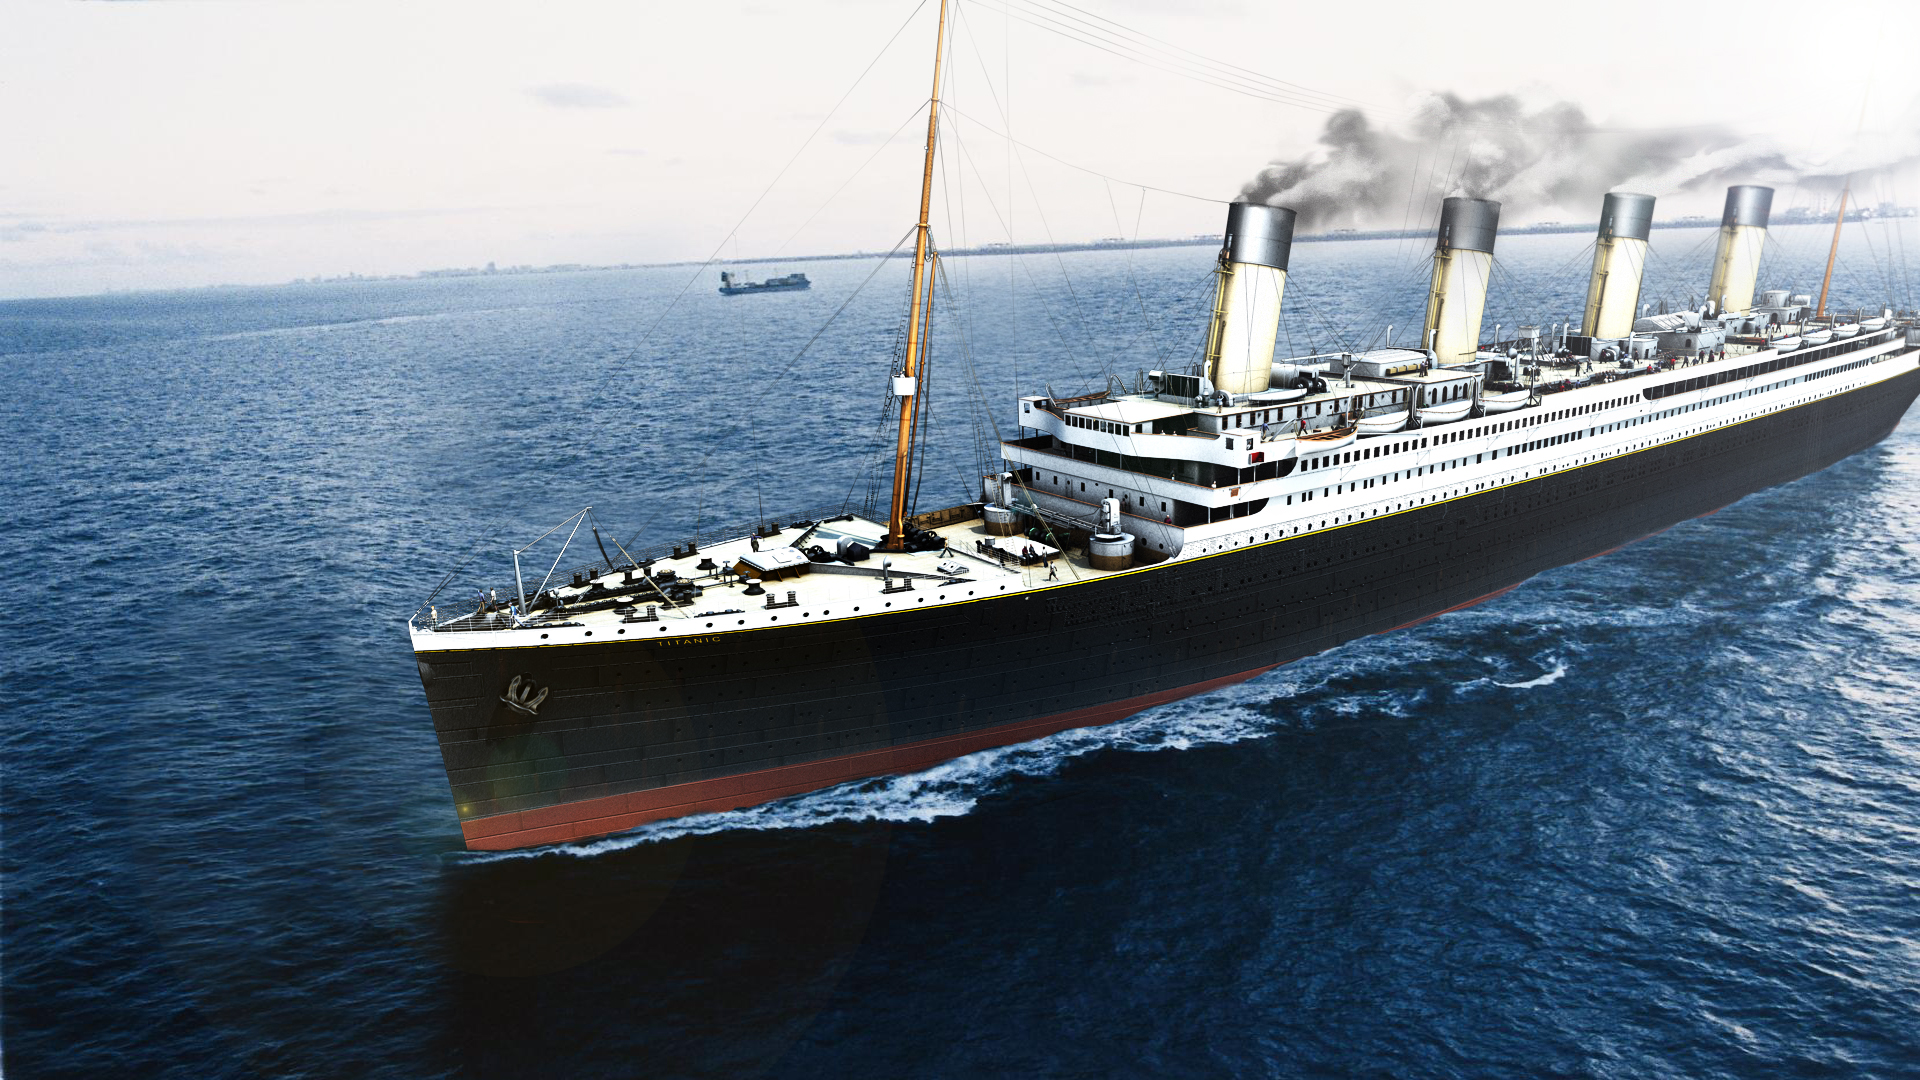 titanic full hd wallpaper and background image | 1920x1080 | id:699662